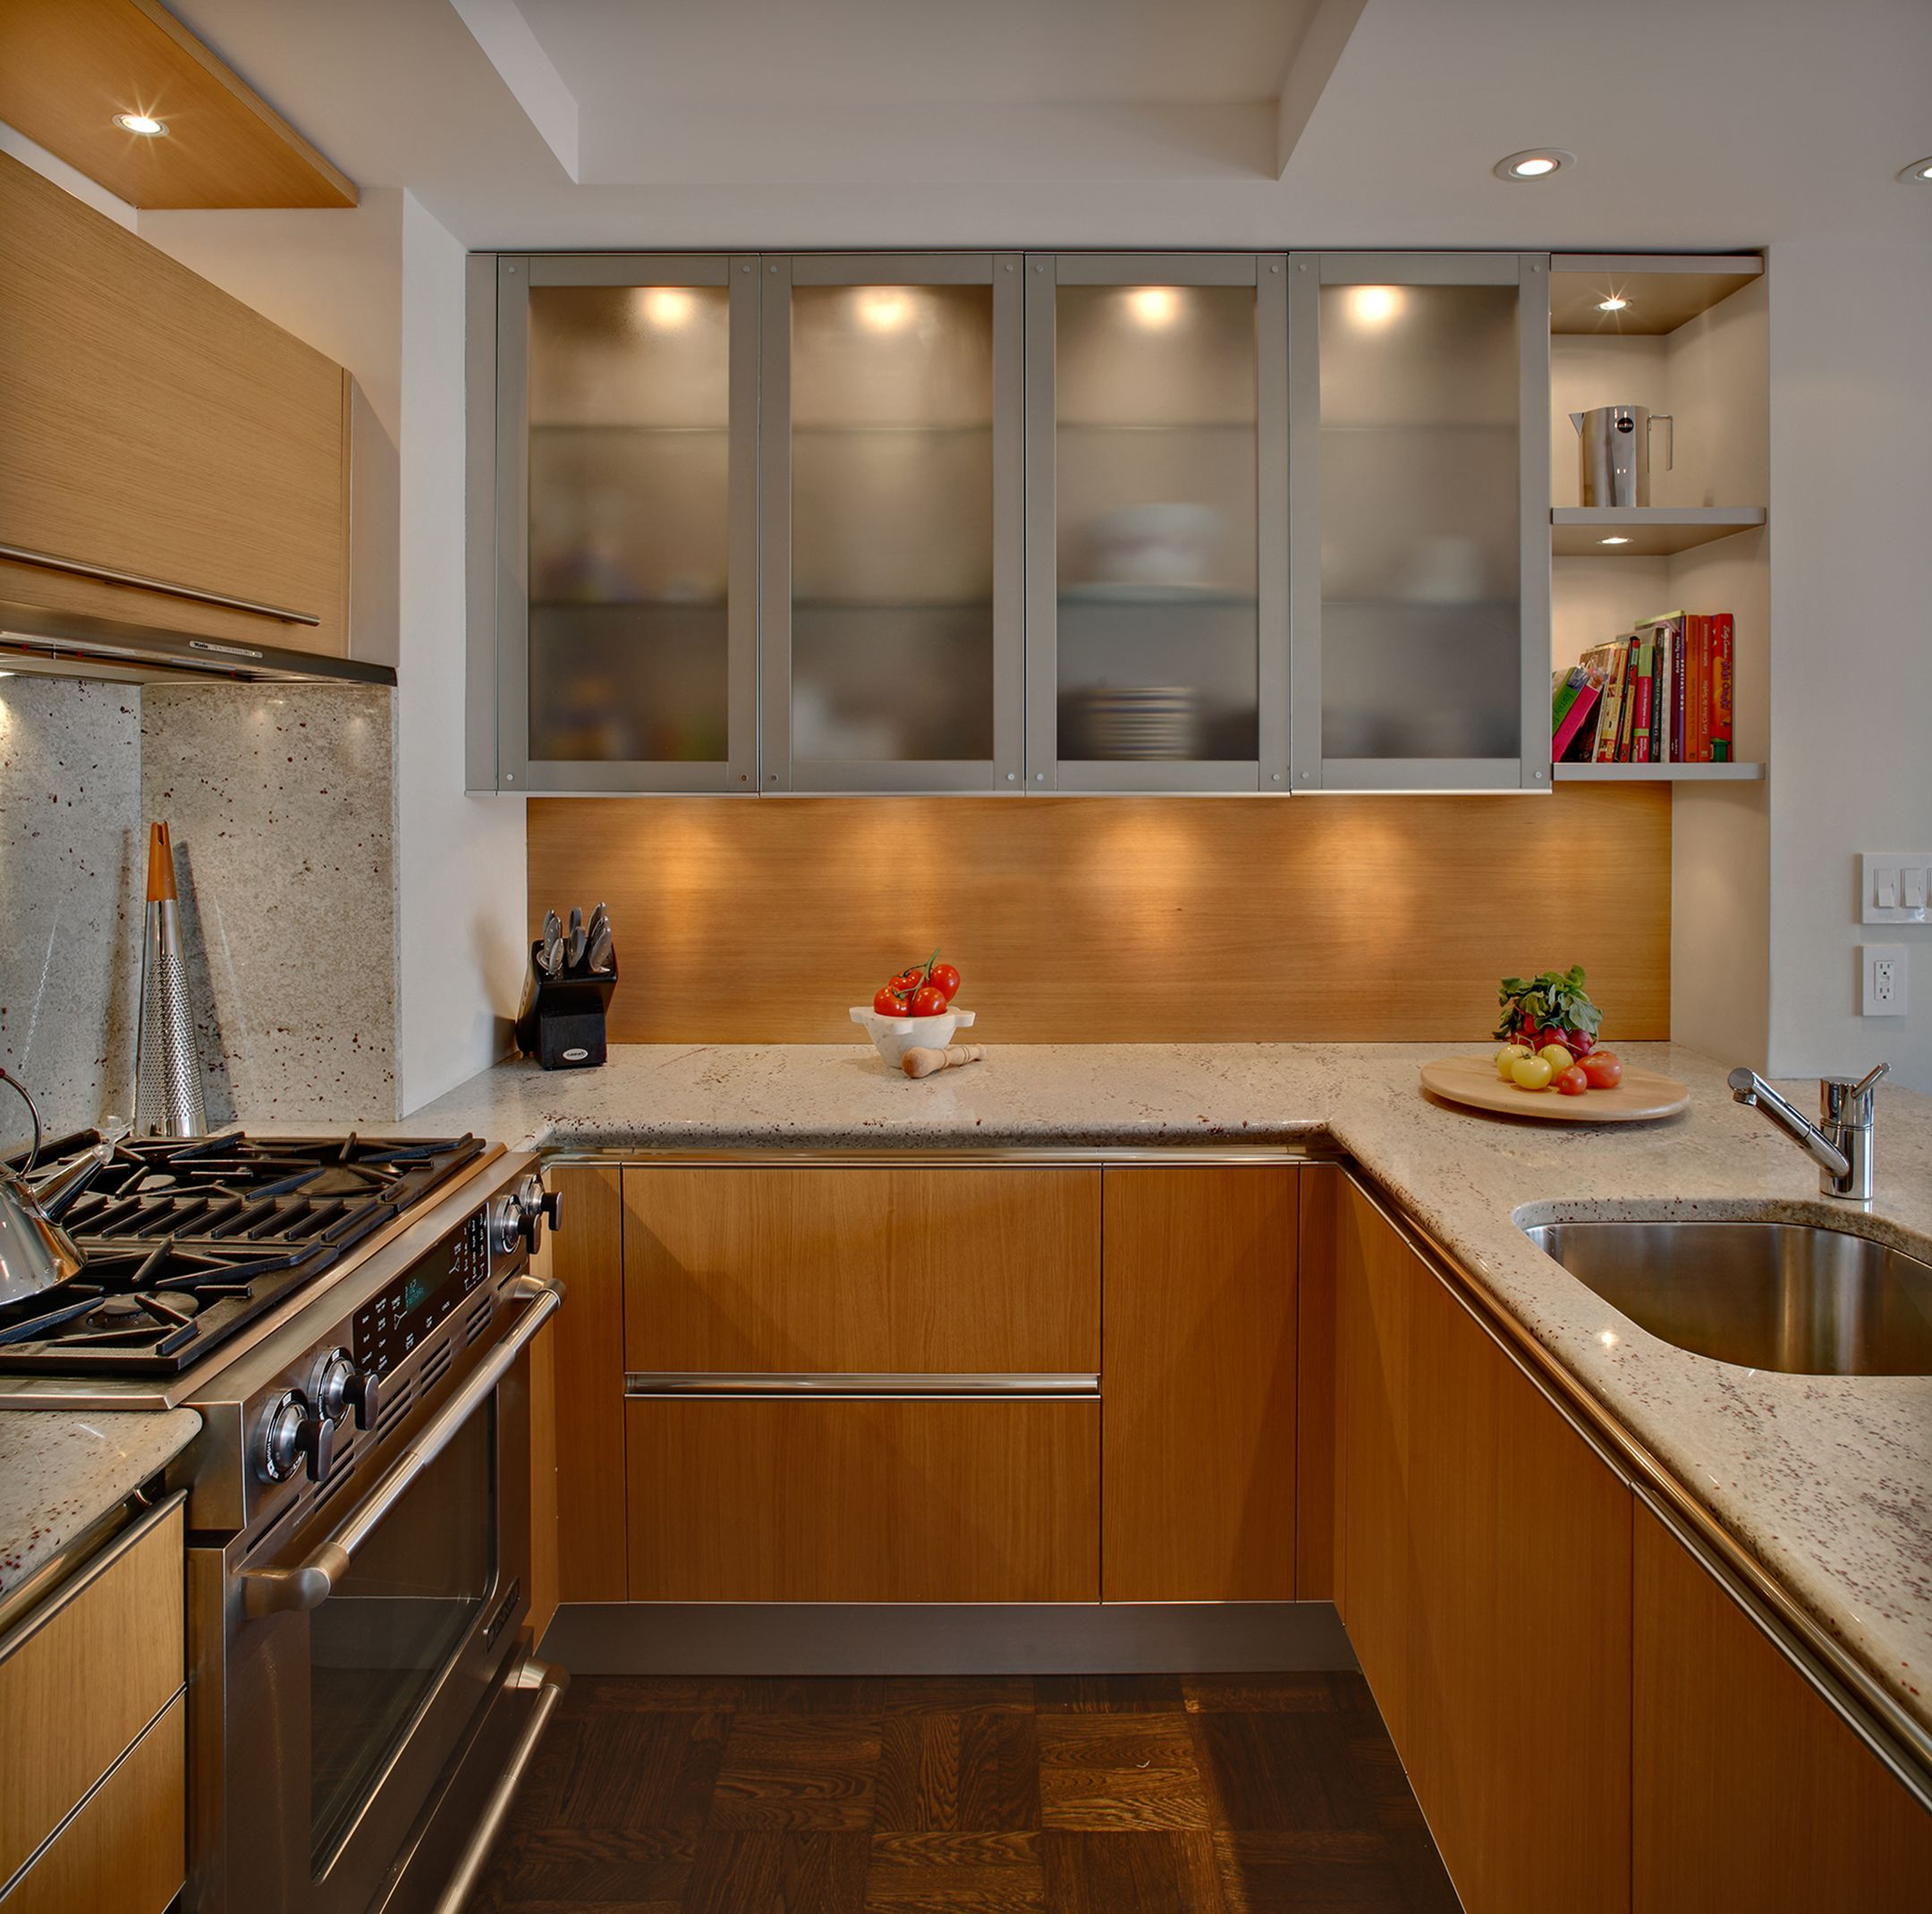 Custom Kitchen Design Modern Natural Oak Cabinetry With 48 Meila Range And High Gloss White Lacqu Glass Kitchen Cabinets Kitchen Design Small Kitchen Design